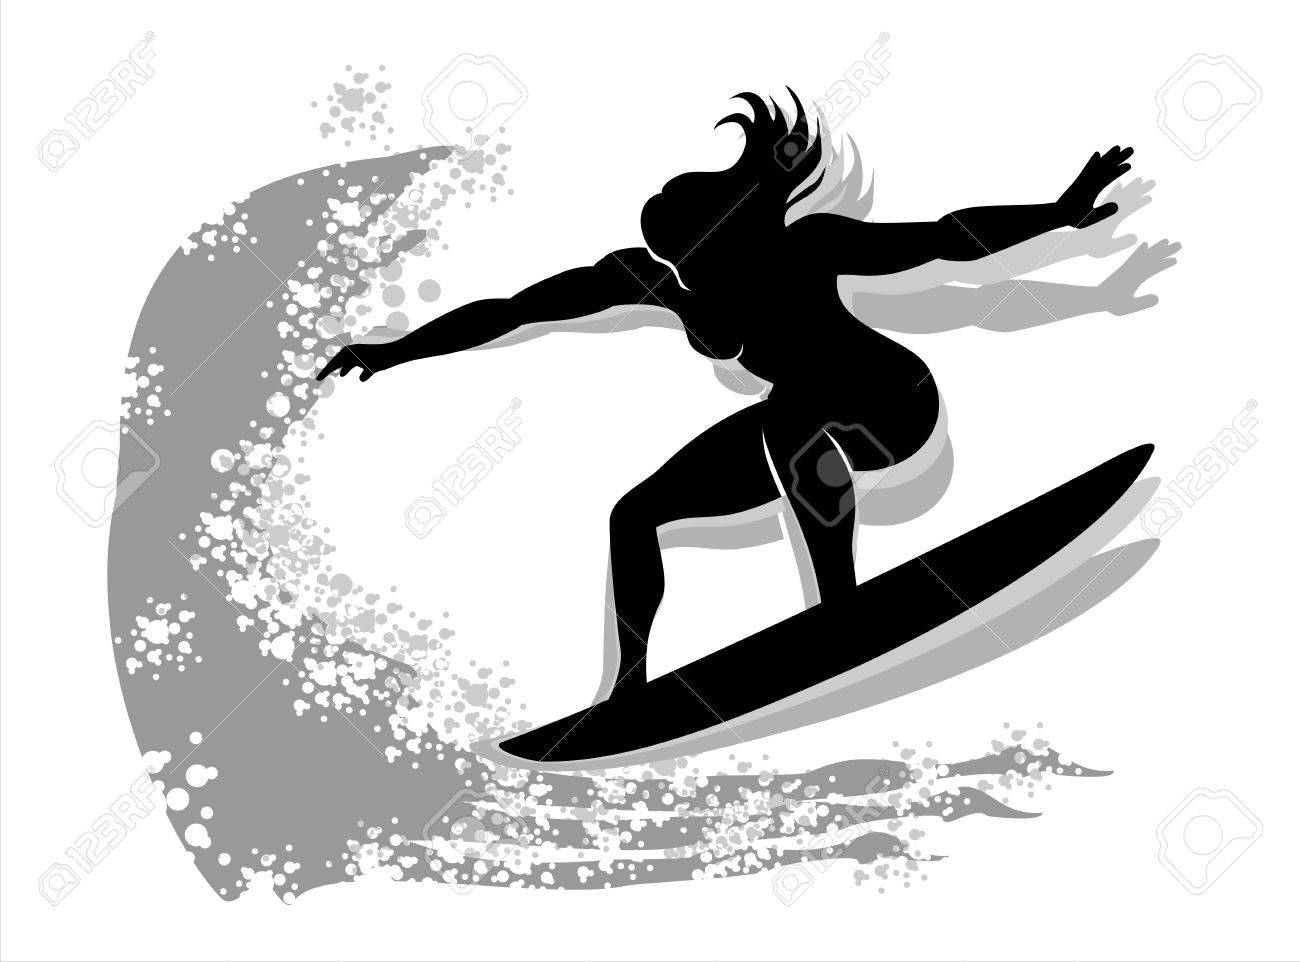 Woman Surfing Silhouette Isolated On White Background